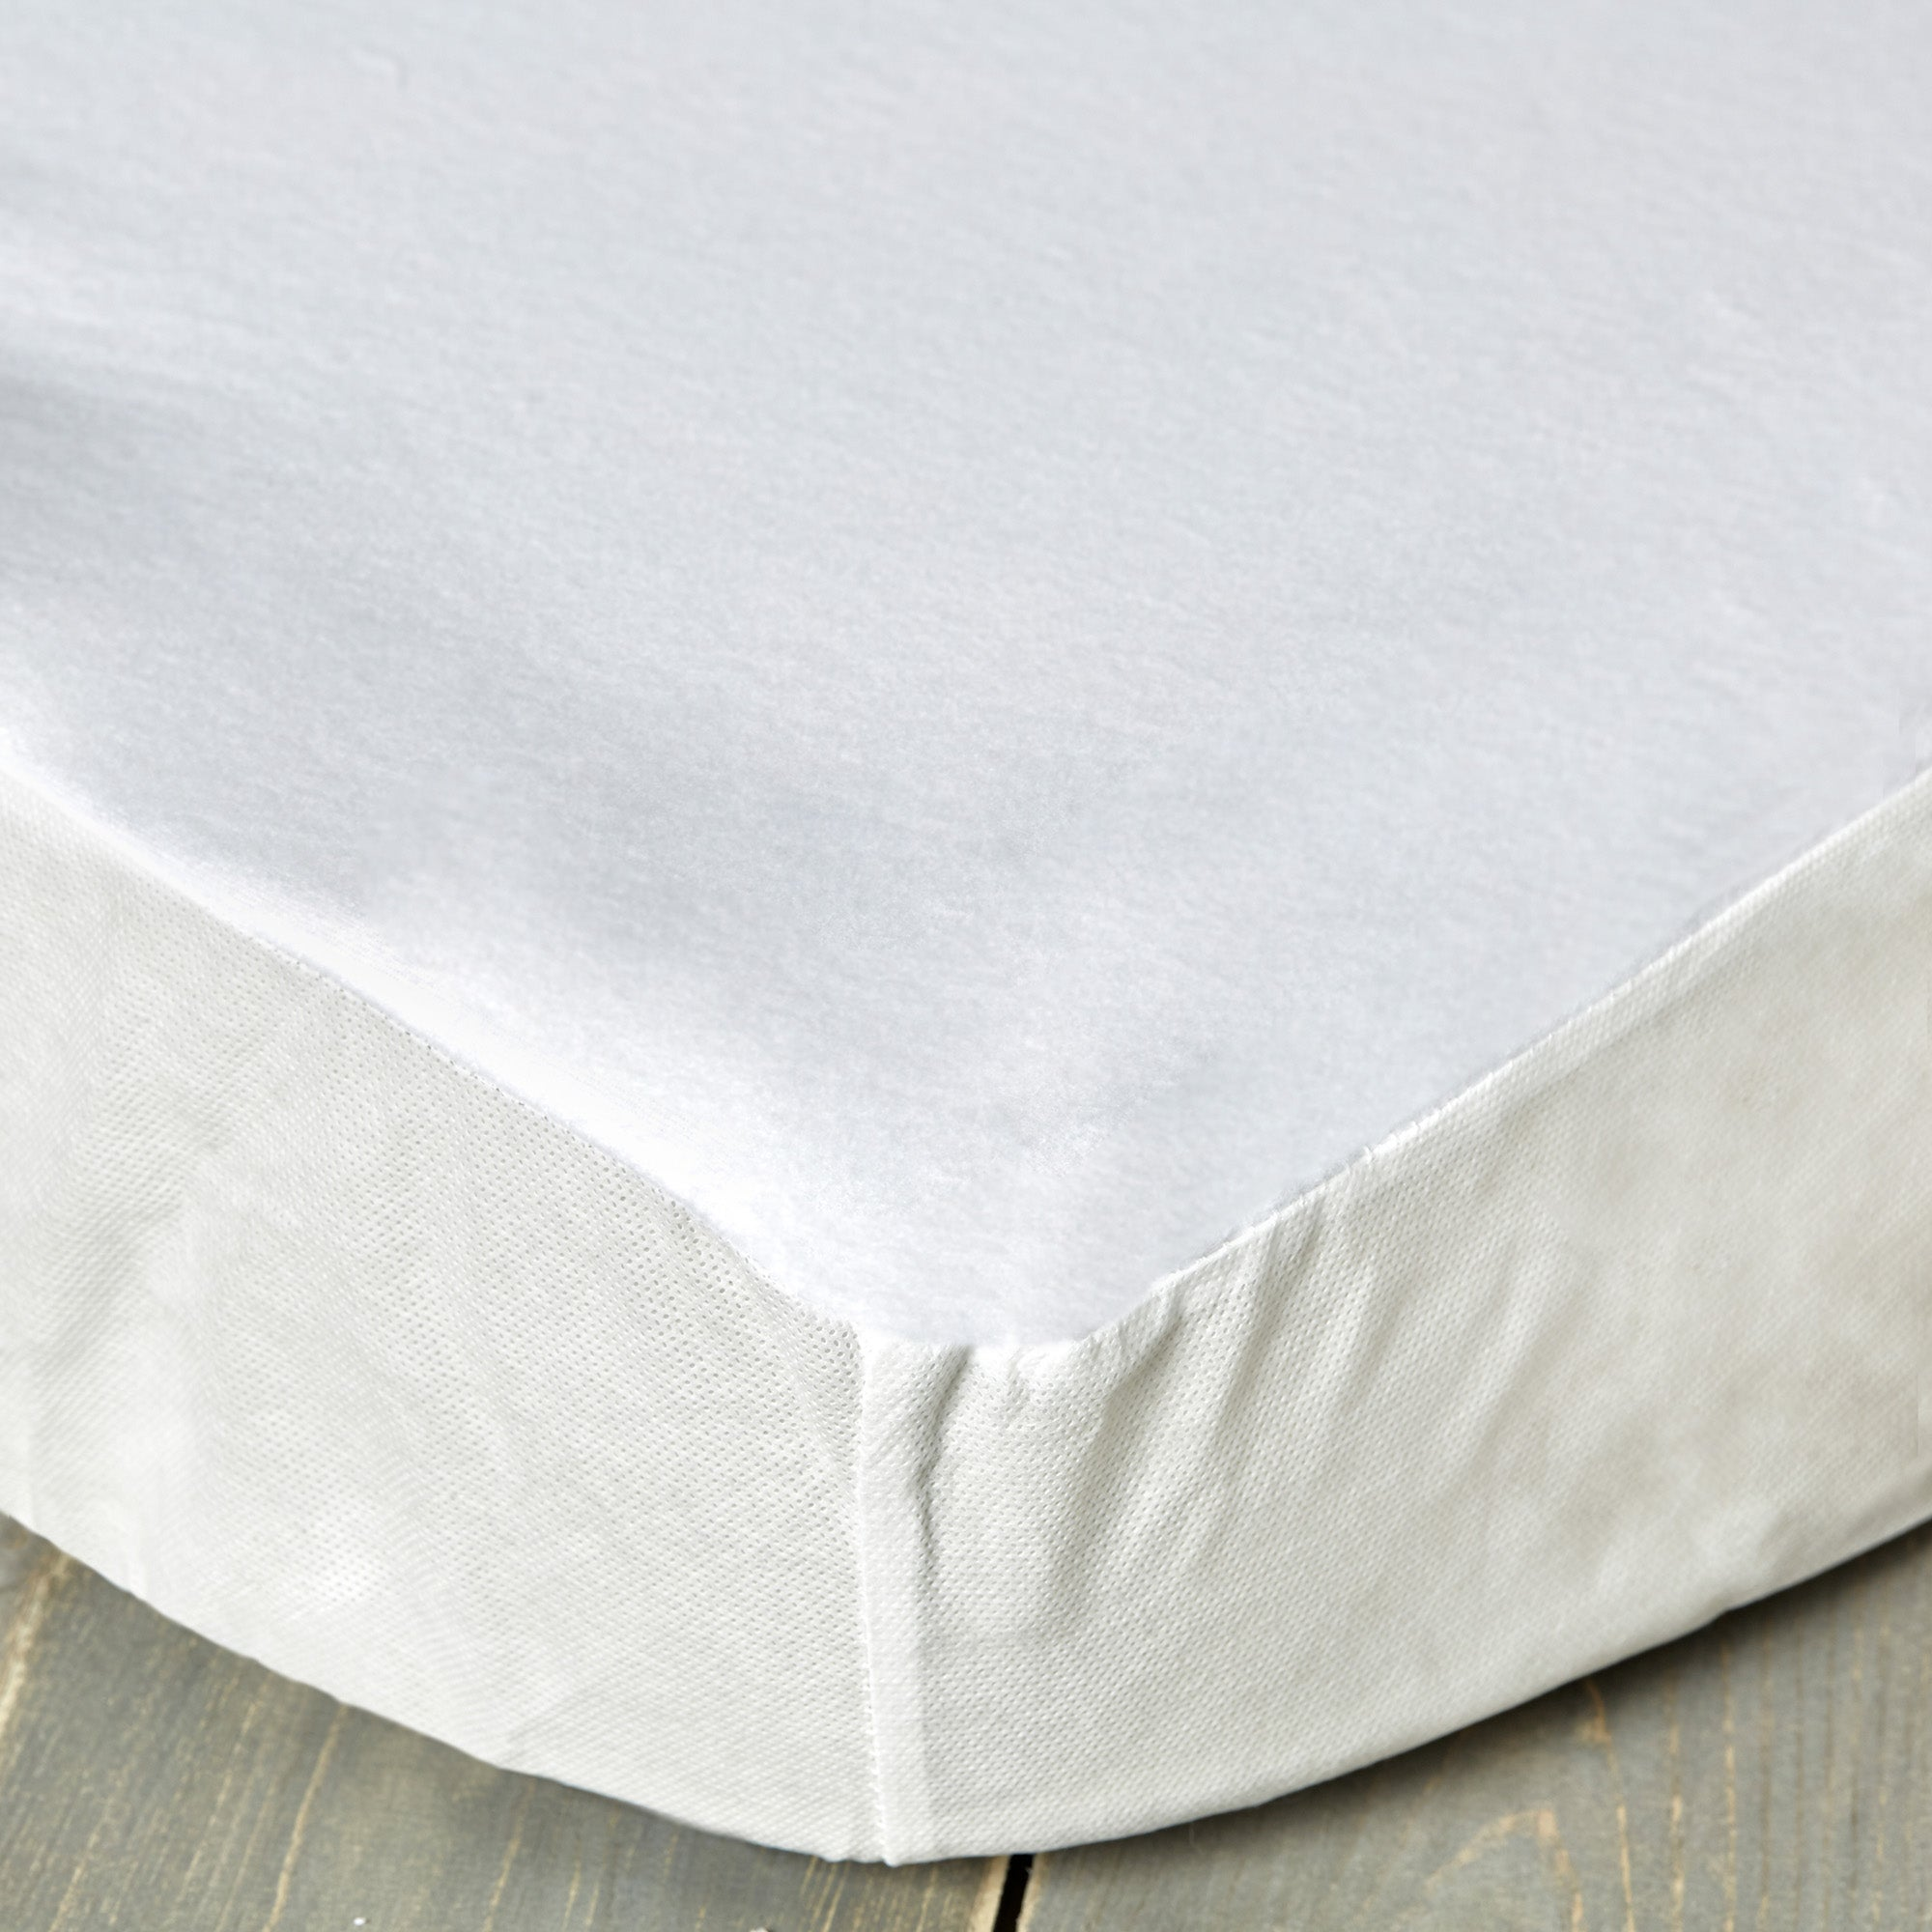 Drynights Waterproof Cotton Soft Mattress Protector